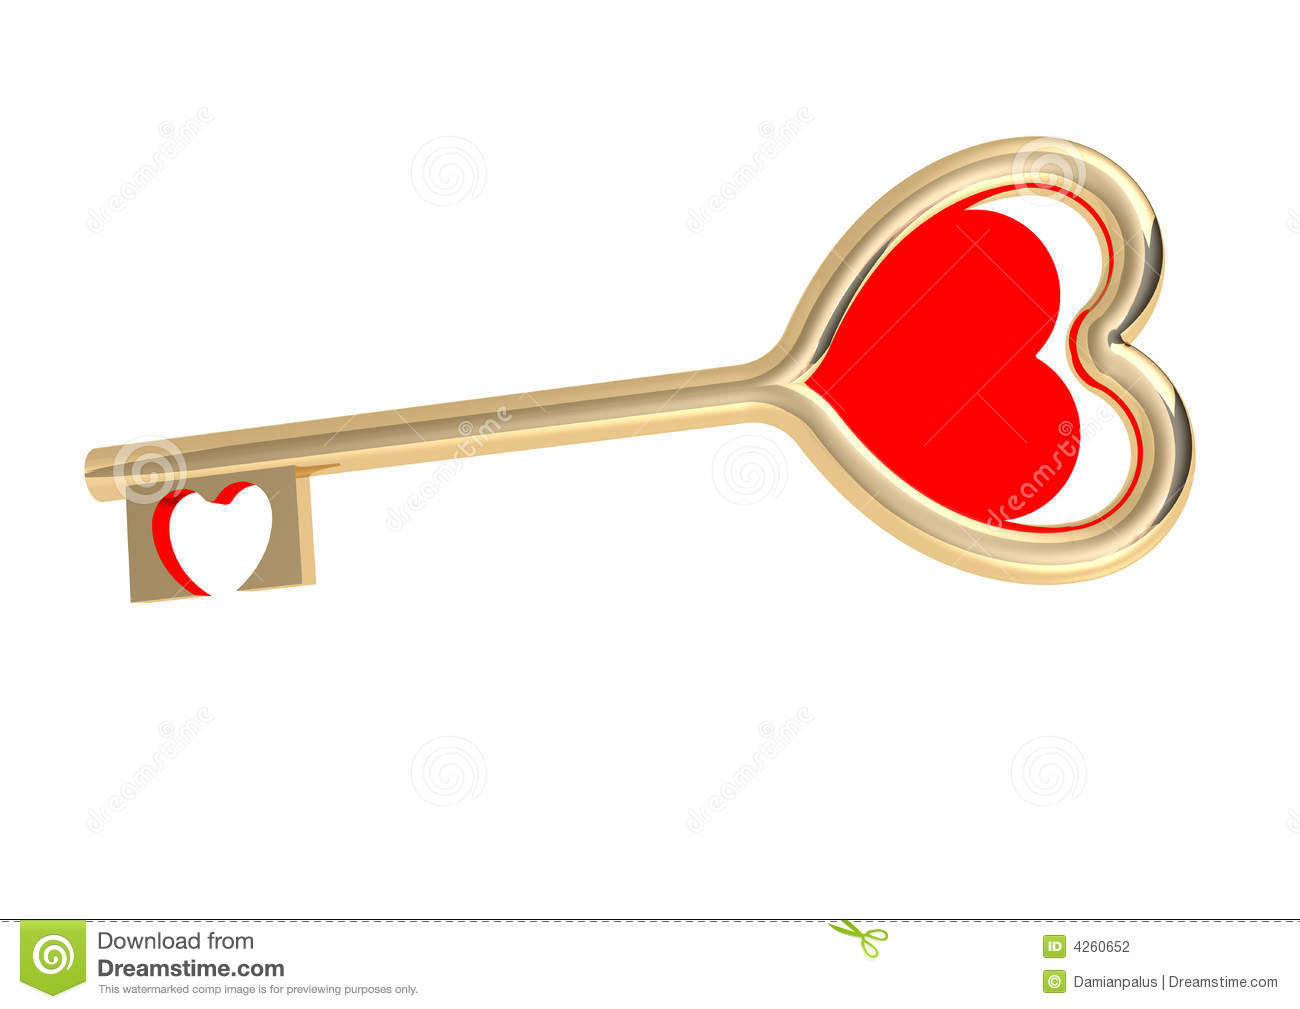 Golden love key and red heart on a white background.